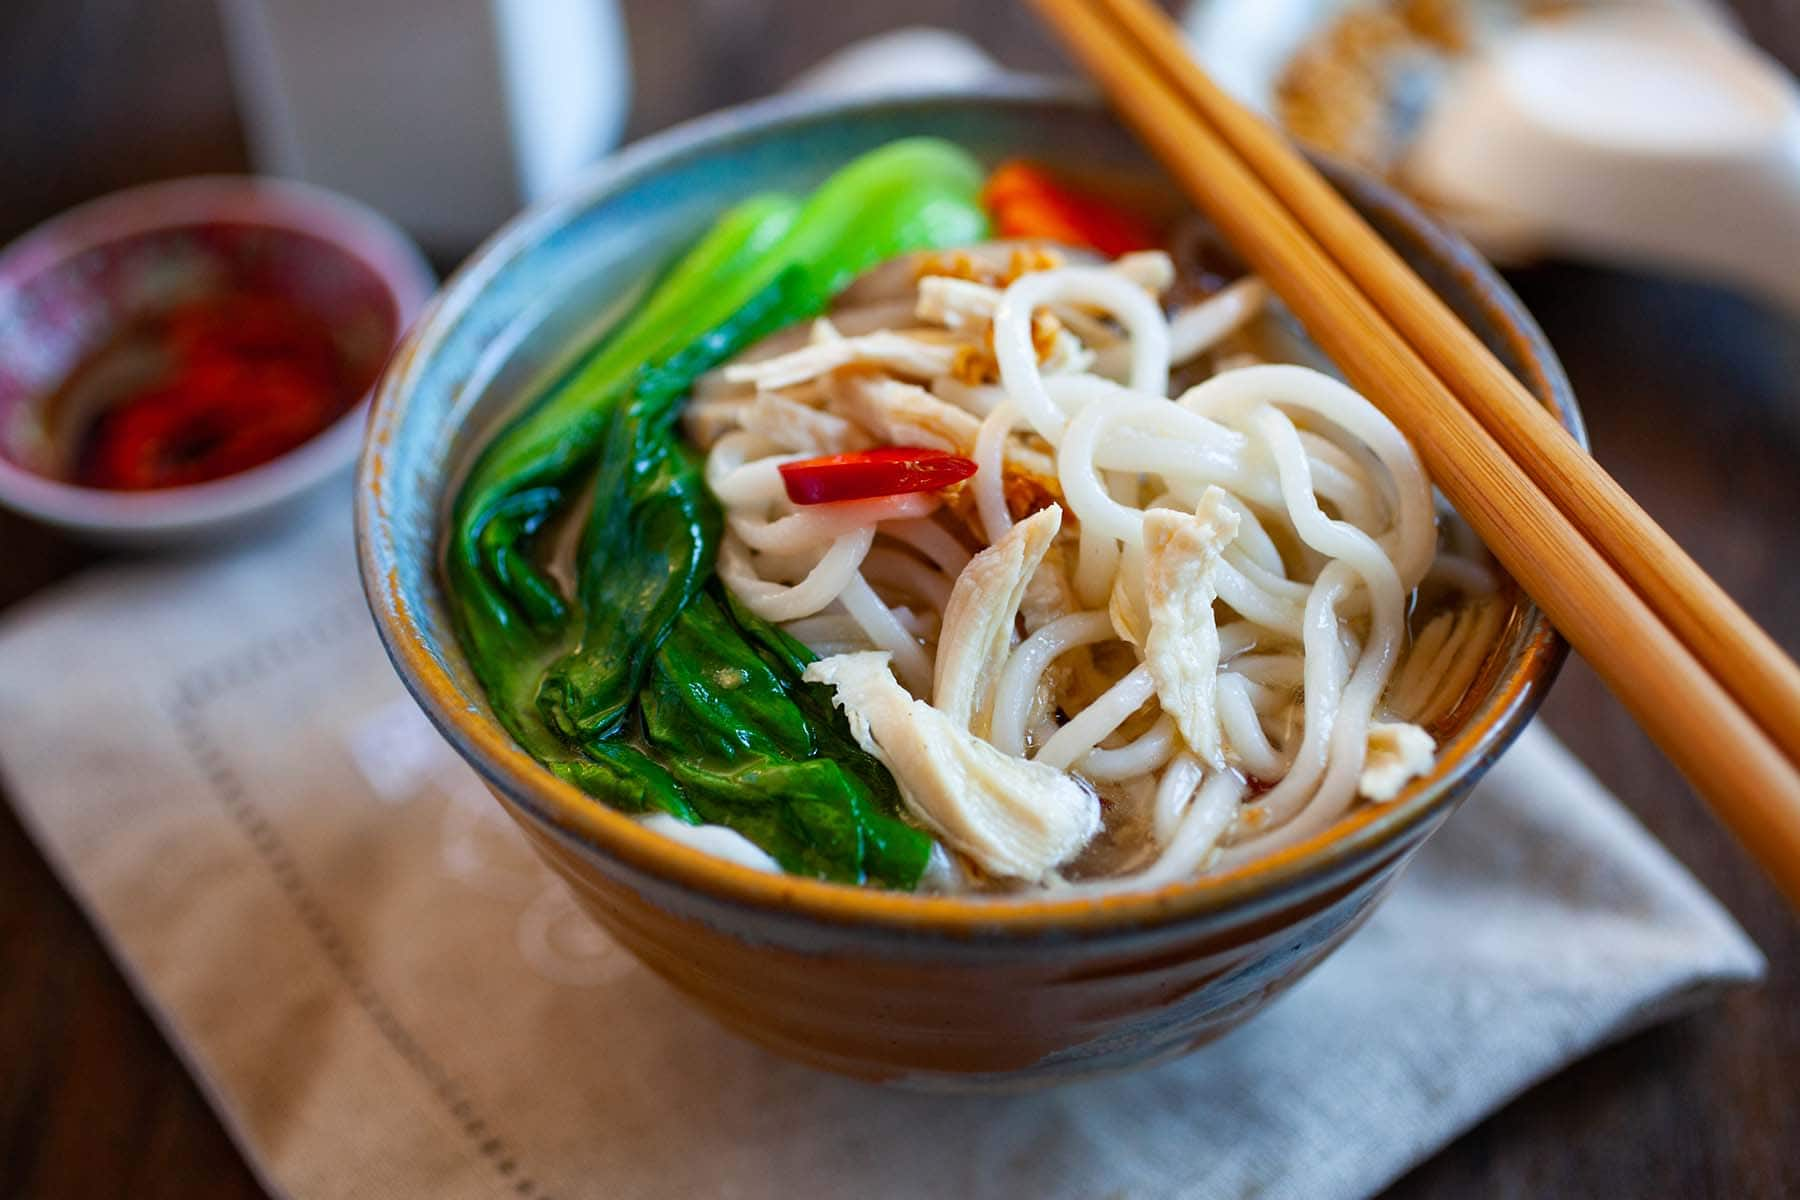 Chinese noodle soup with chicken, bok choy and noodles in a white bowl.